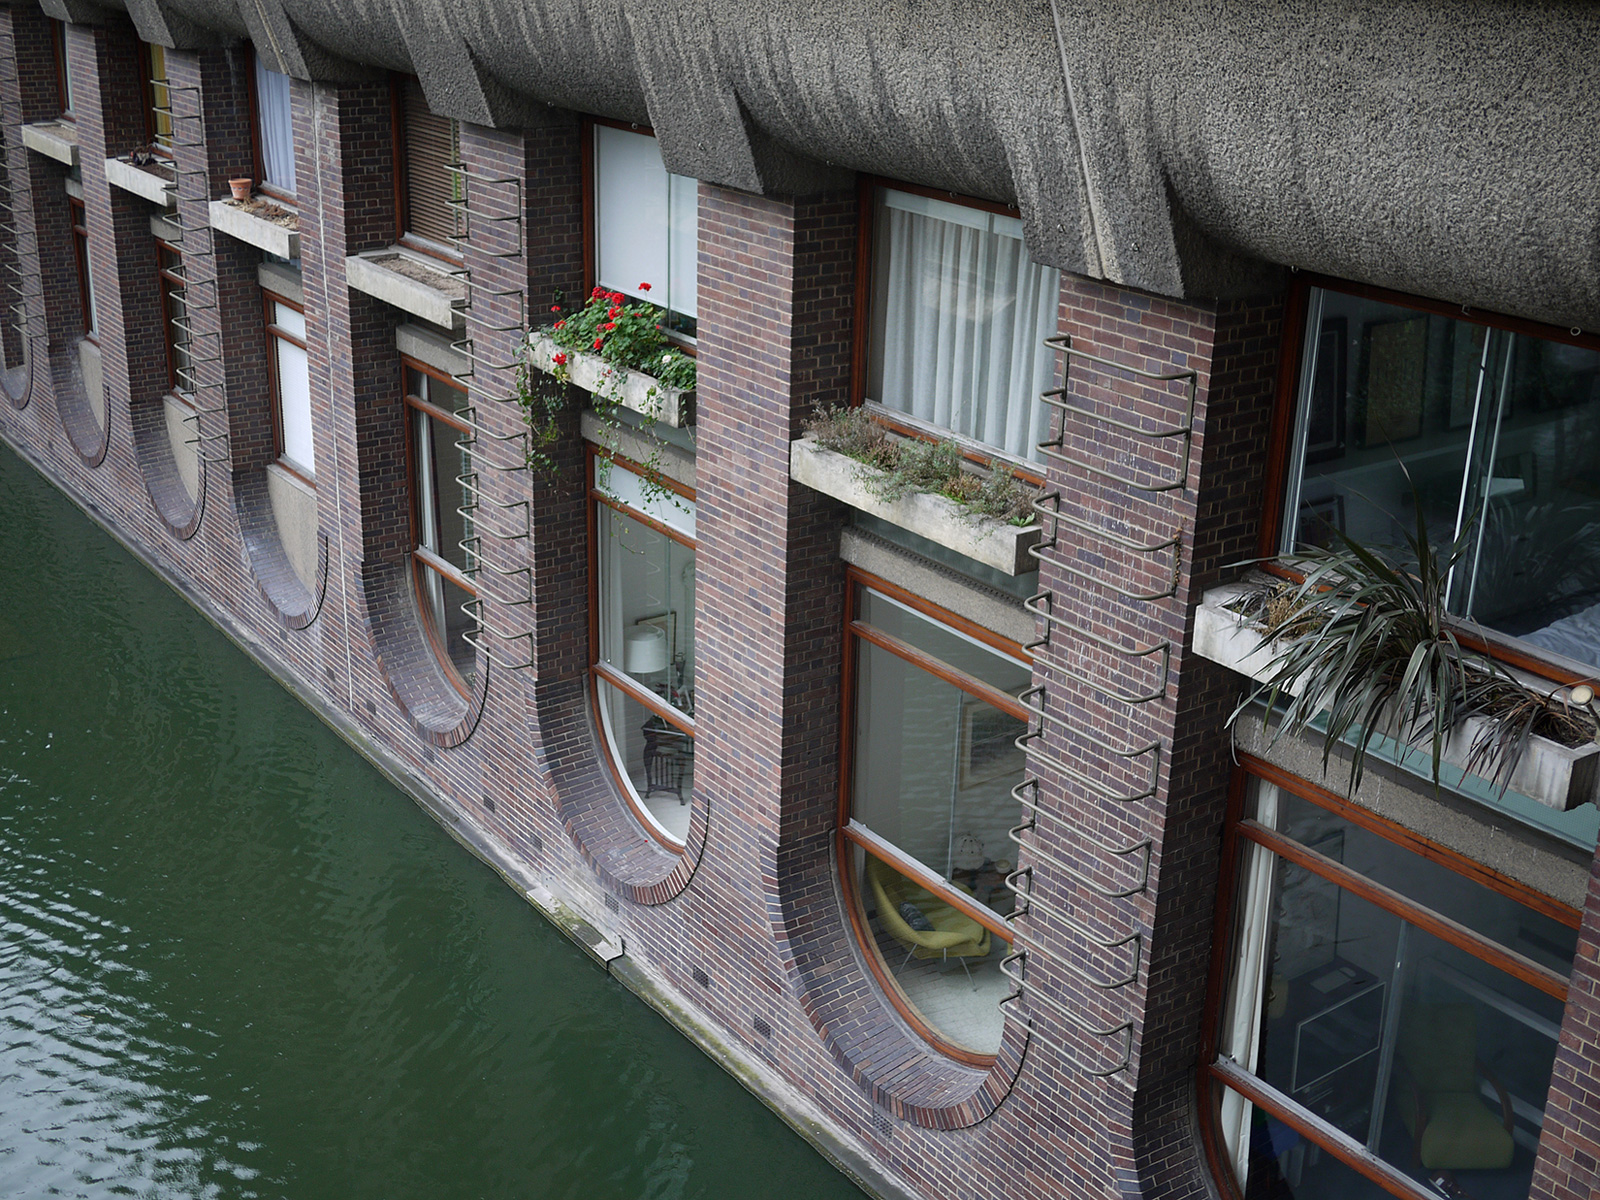 This Brutal House: Barbican Estate, flats overlooking the water